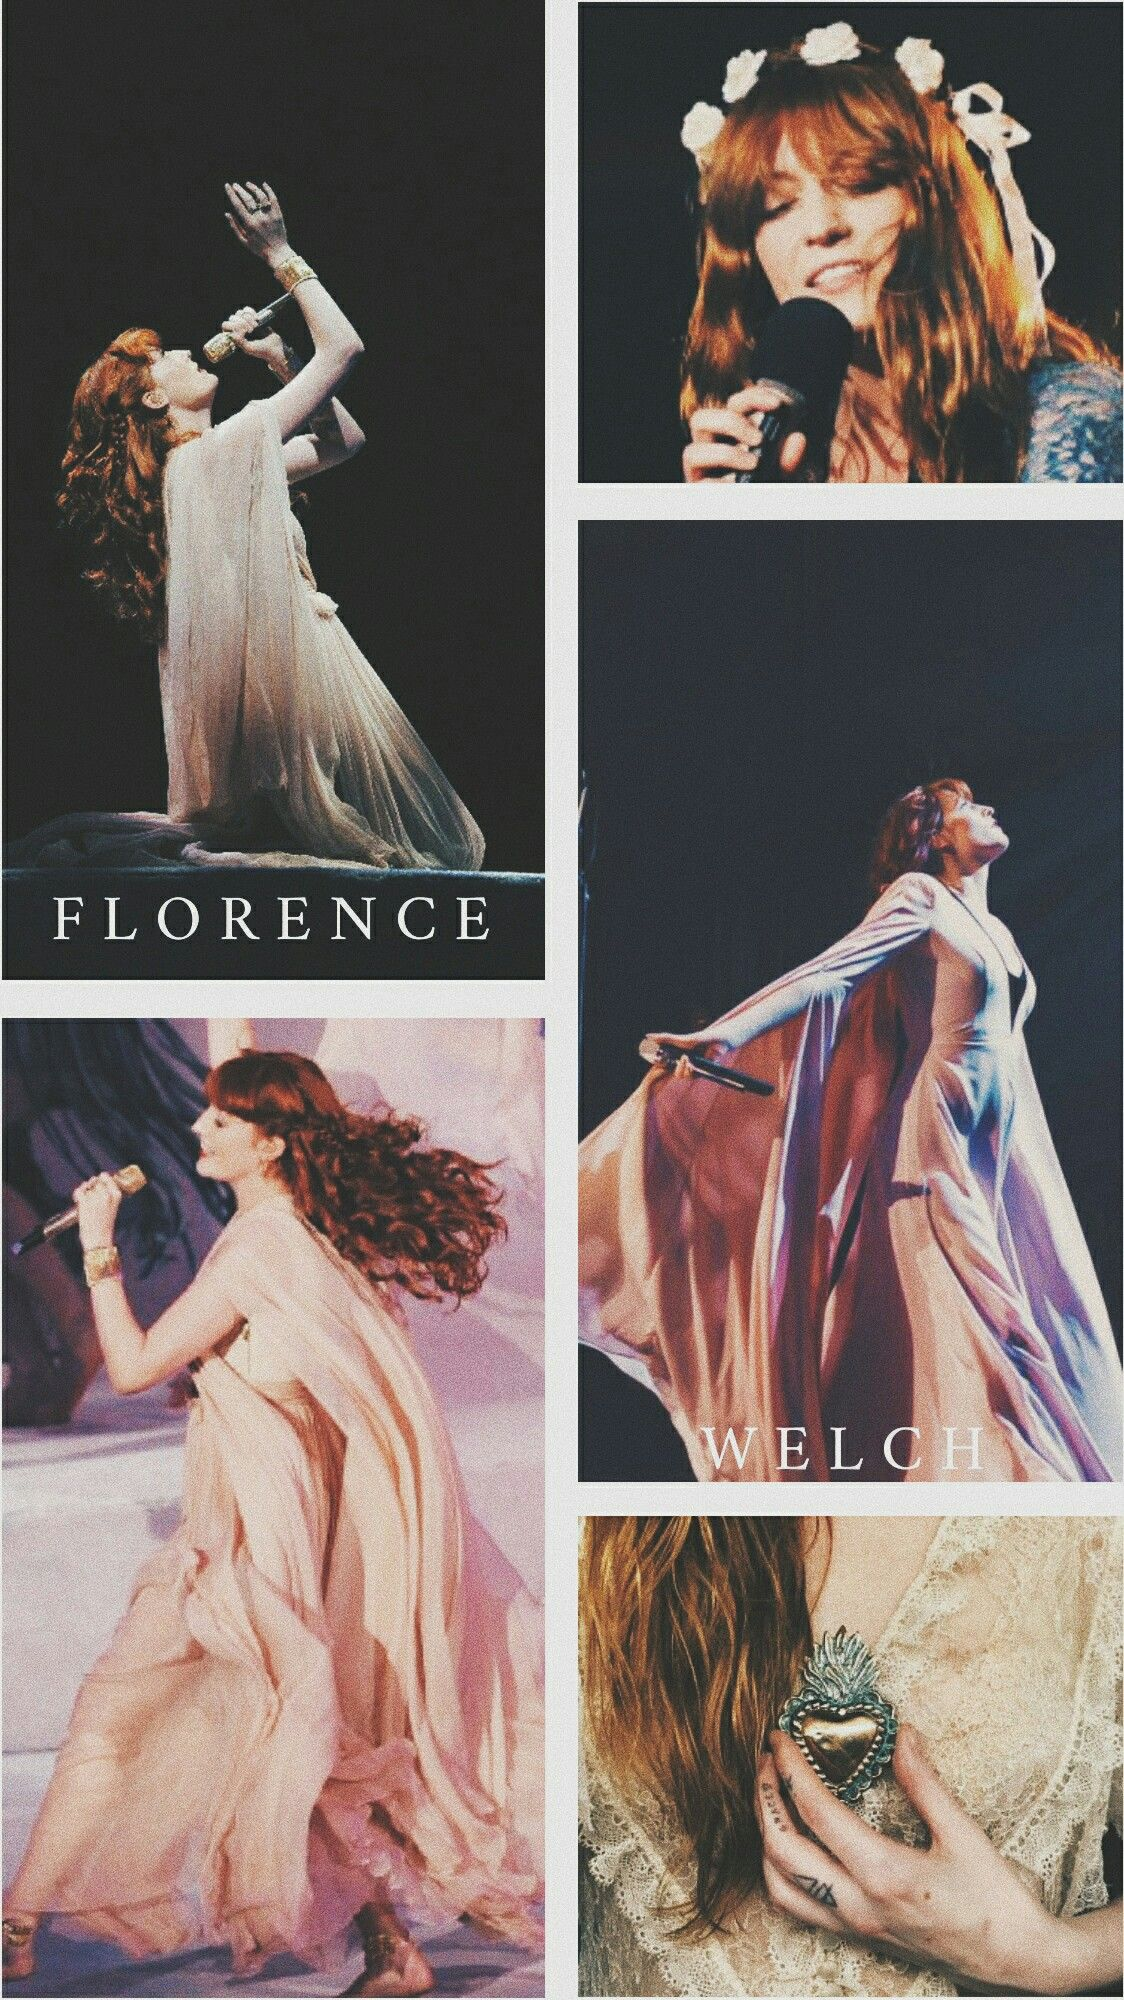 Florence Welch Wallpaper Queens Florence Welch Florence The Machines Florence